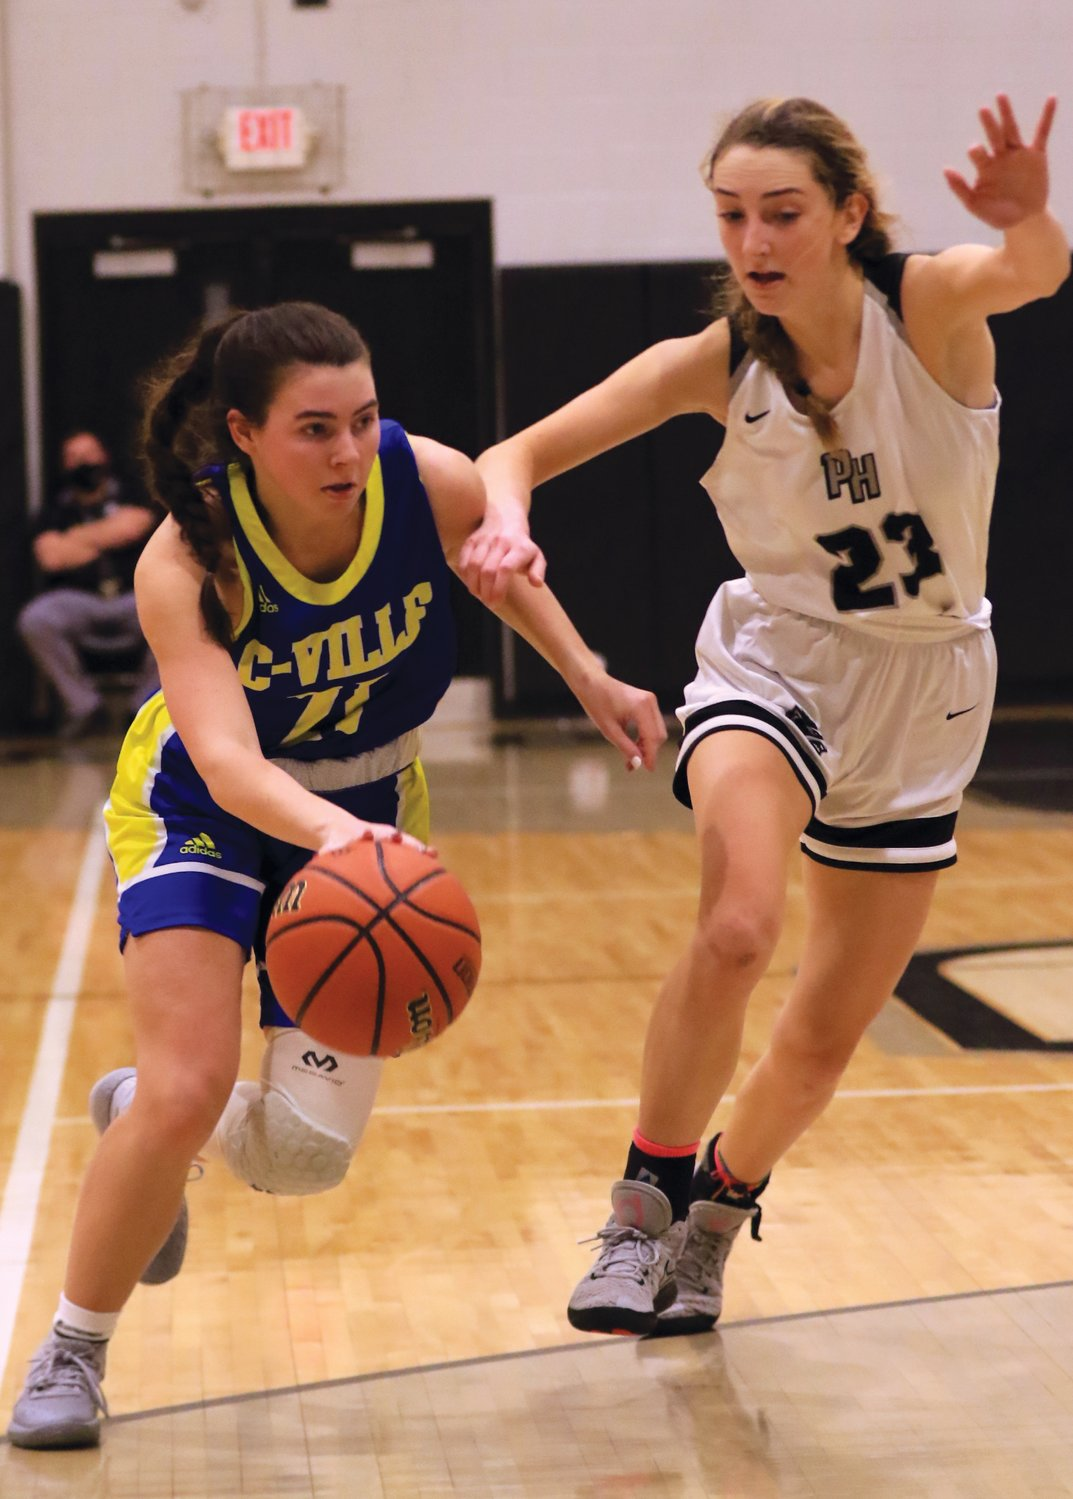 Crawfordsville's Liddy McCarty drives to the hoop against Parke Heritage on Saturday. The junior had five points in a 44-37 loss for the Athenians.